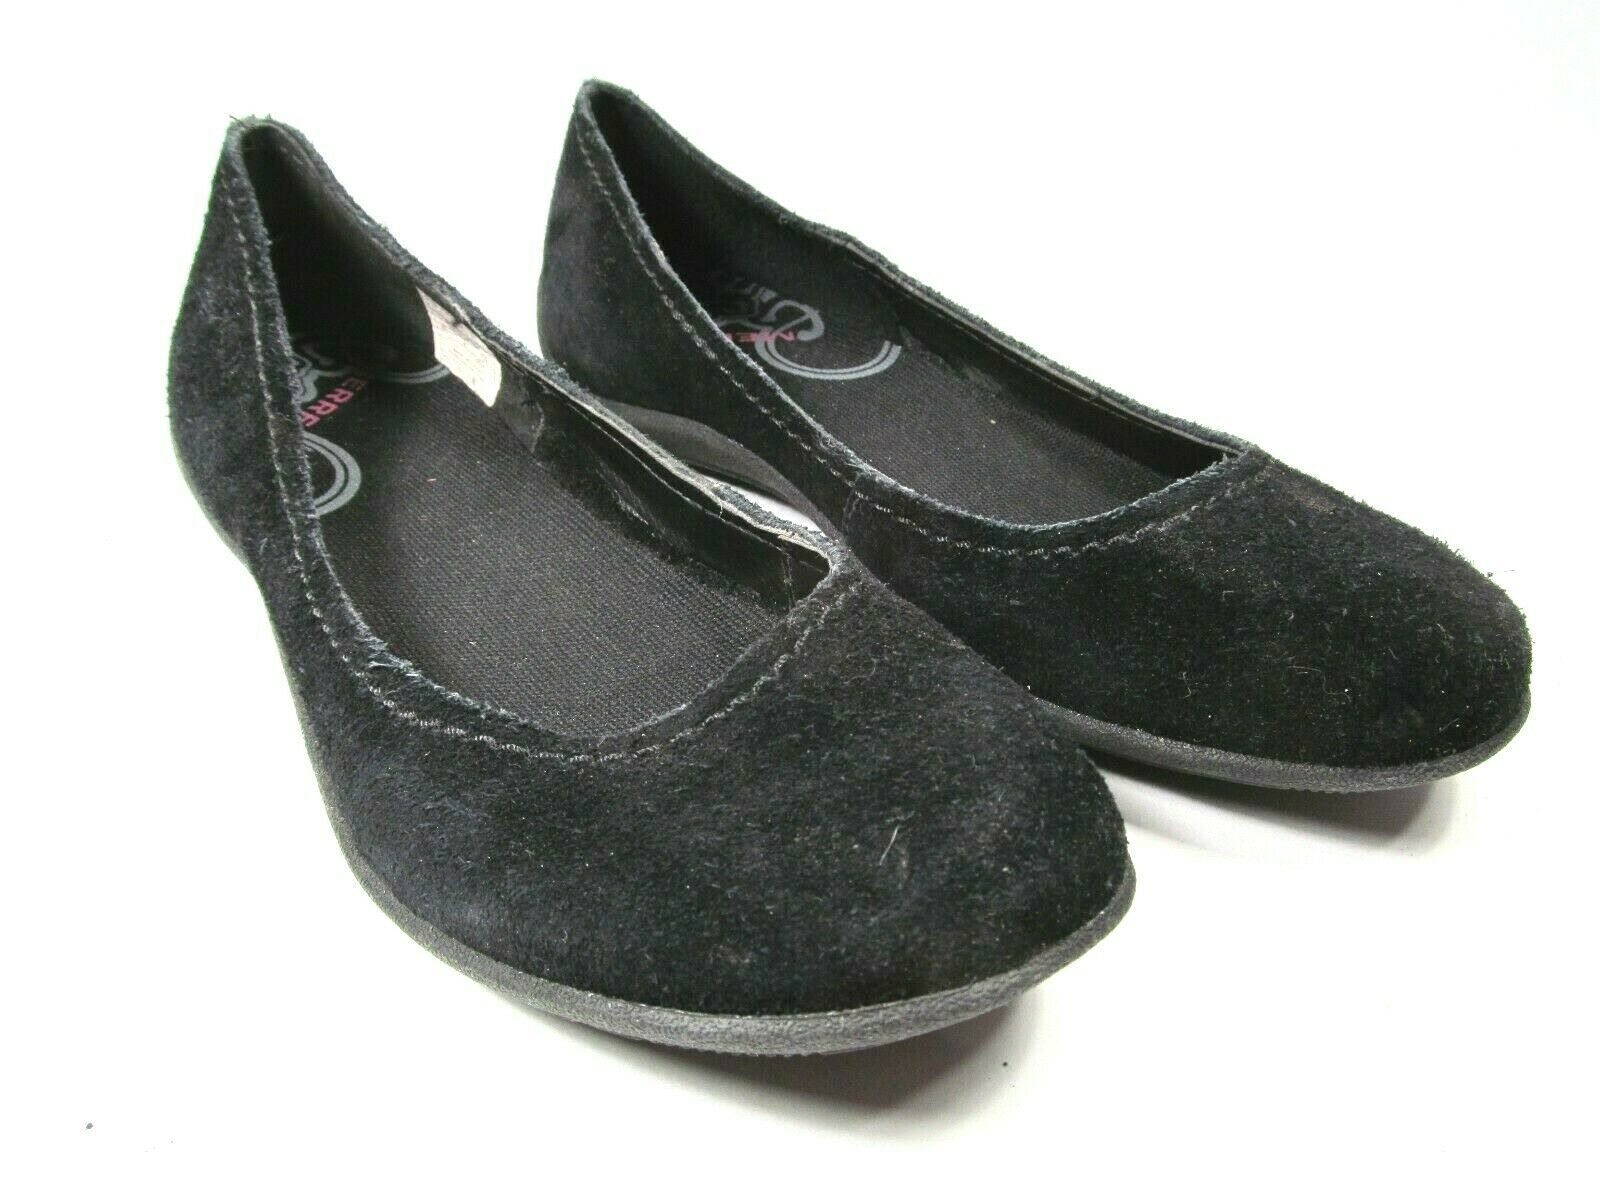 Merrell Avesso Womens Black Slip On Ballet Flats Size US 6.5  EUR 37 - $28.13